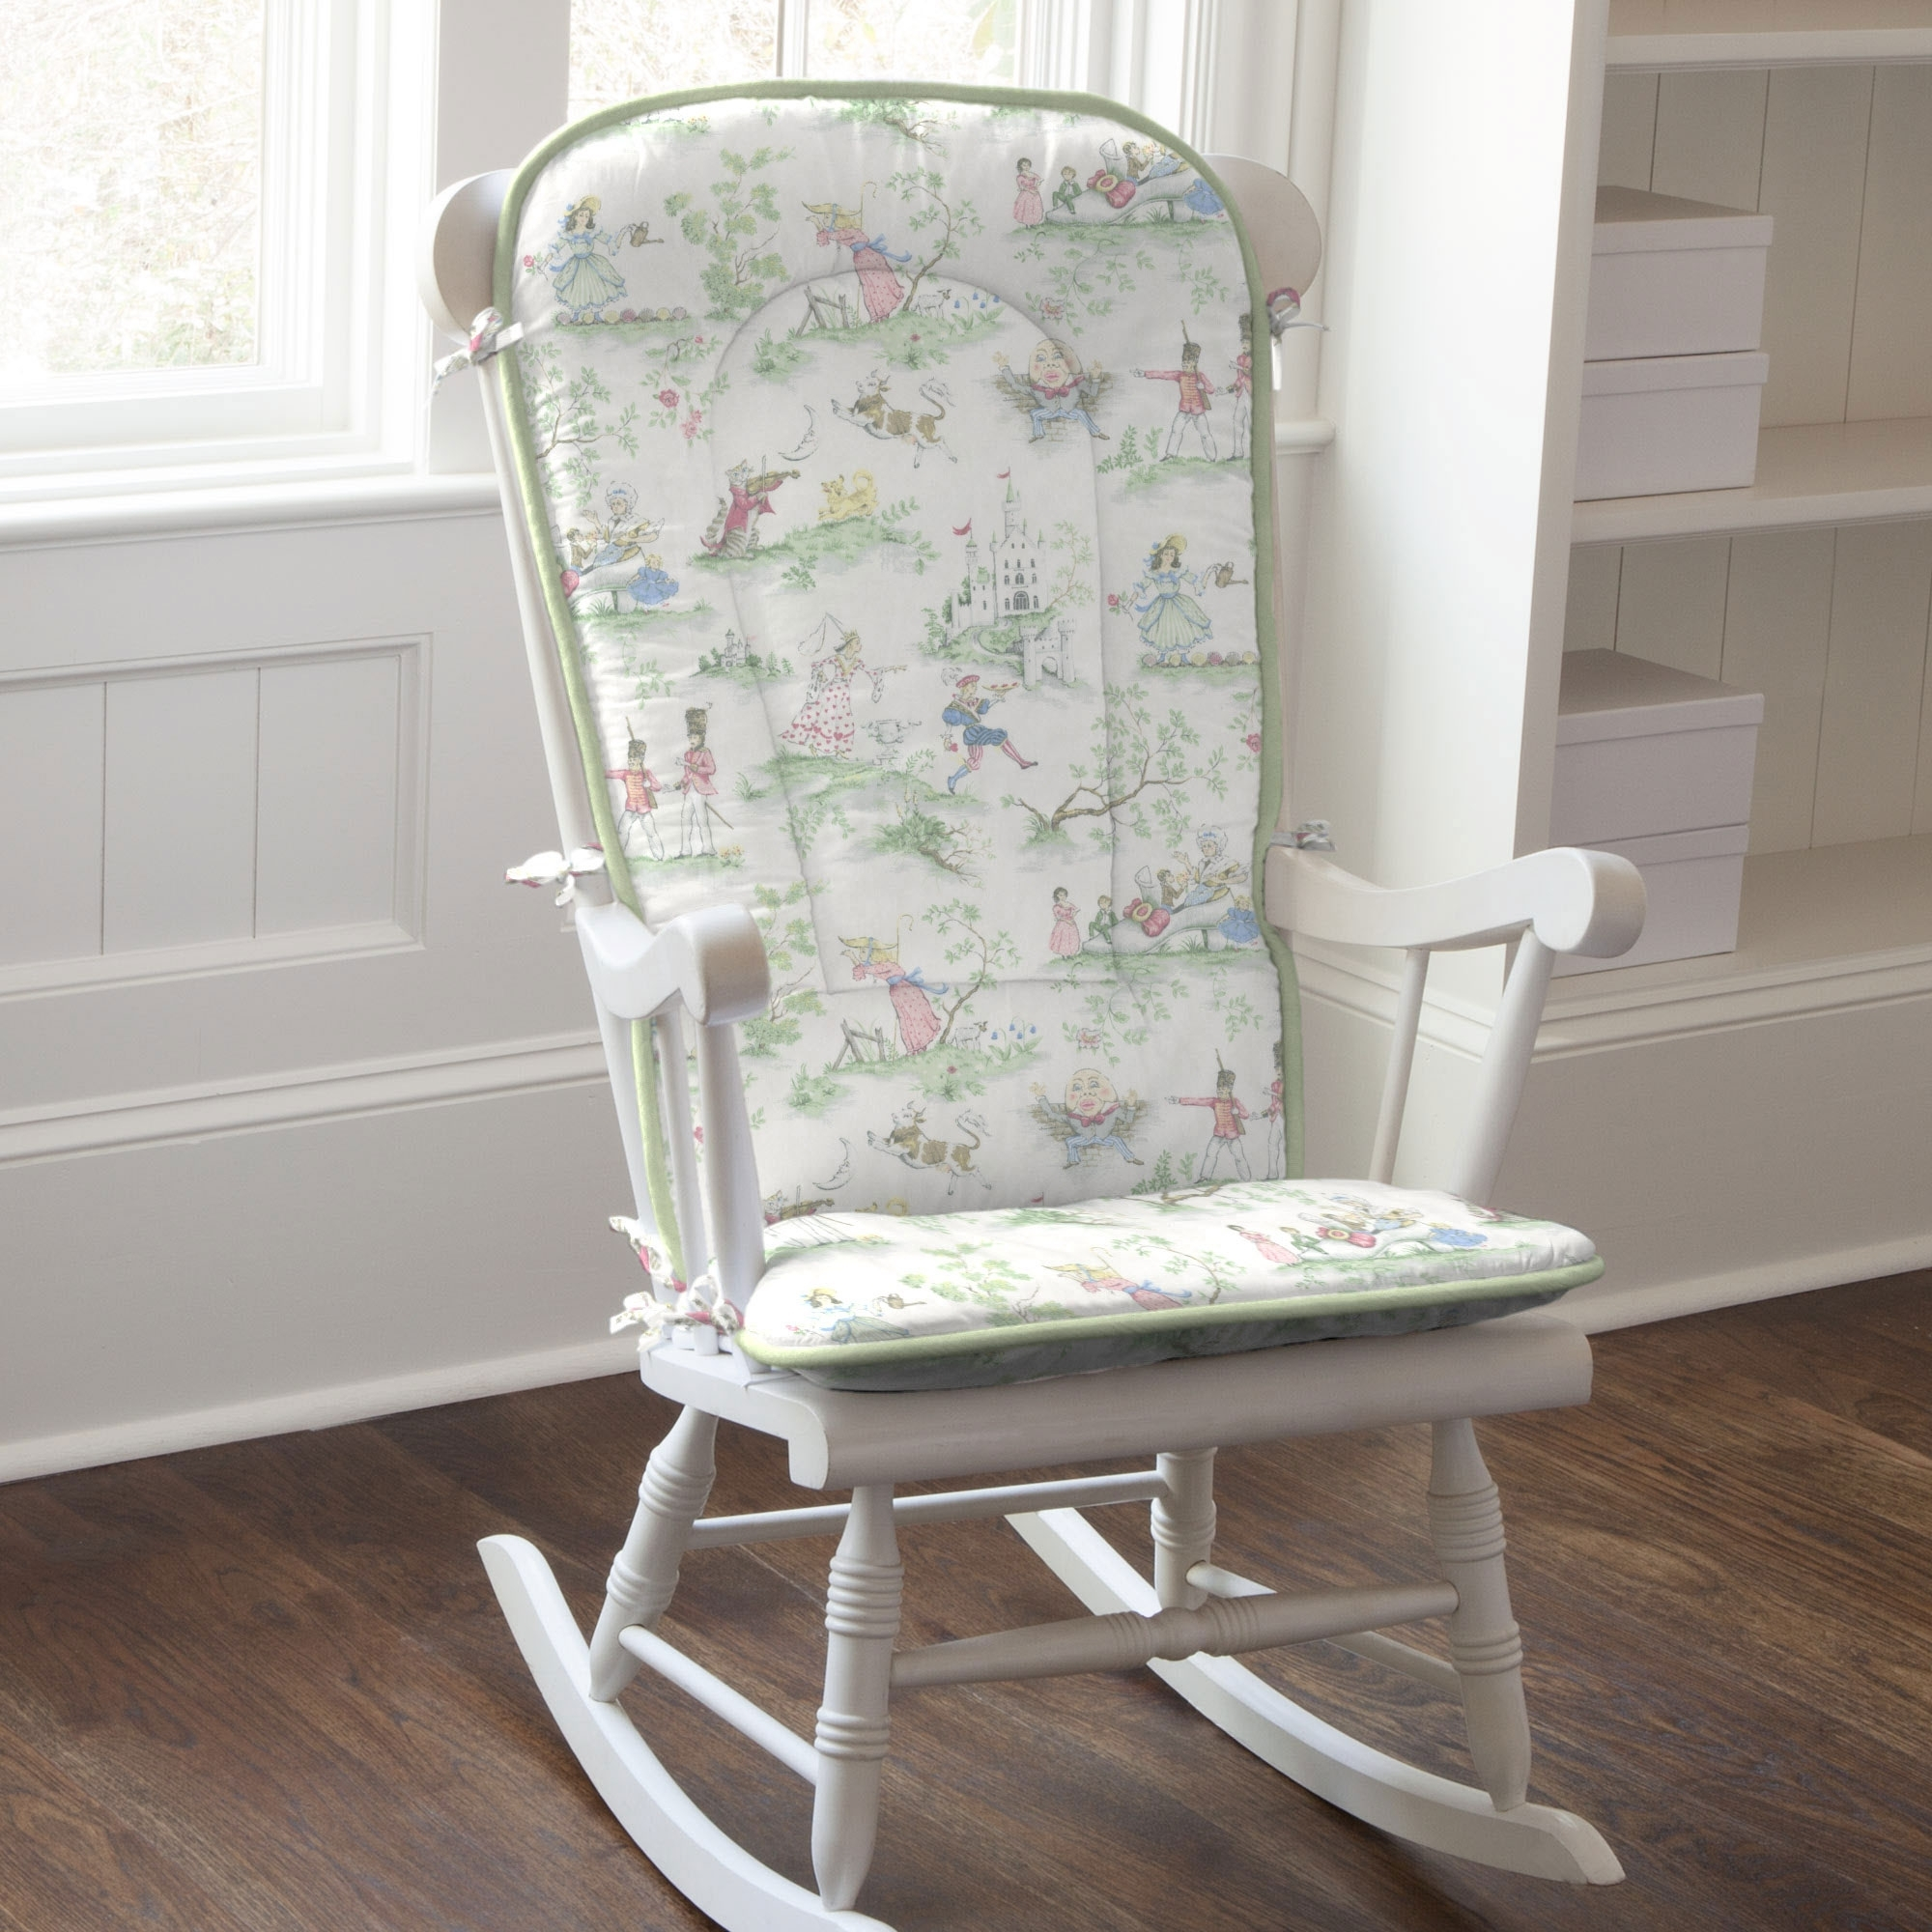 Newest Rocking Chair For Nursery Adult : Milton Milano Designs – Rocking Throughout Rocking Chairs For Nursery (View 9 of 20)